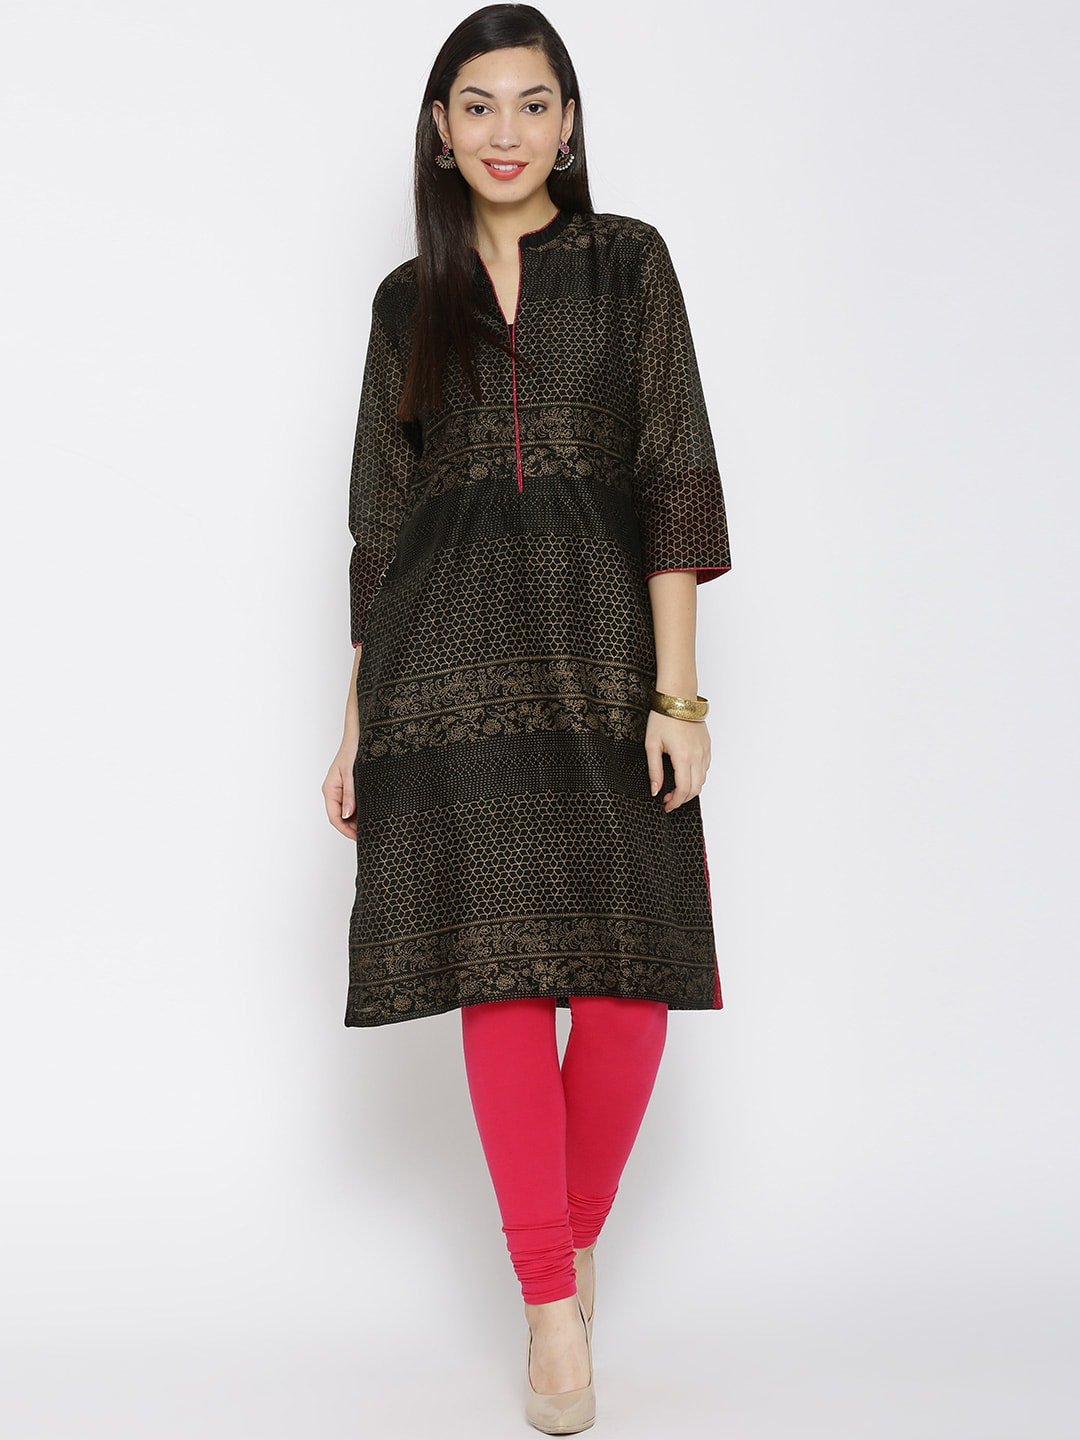 860567752 Rangmanch By Pantaloons Mandarin Collar Kurtas - Buy Rangmanch By Pantaloons  Mandarin Collar Kurtas online in India